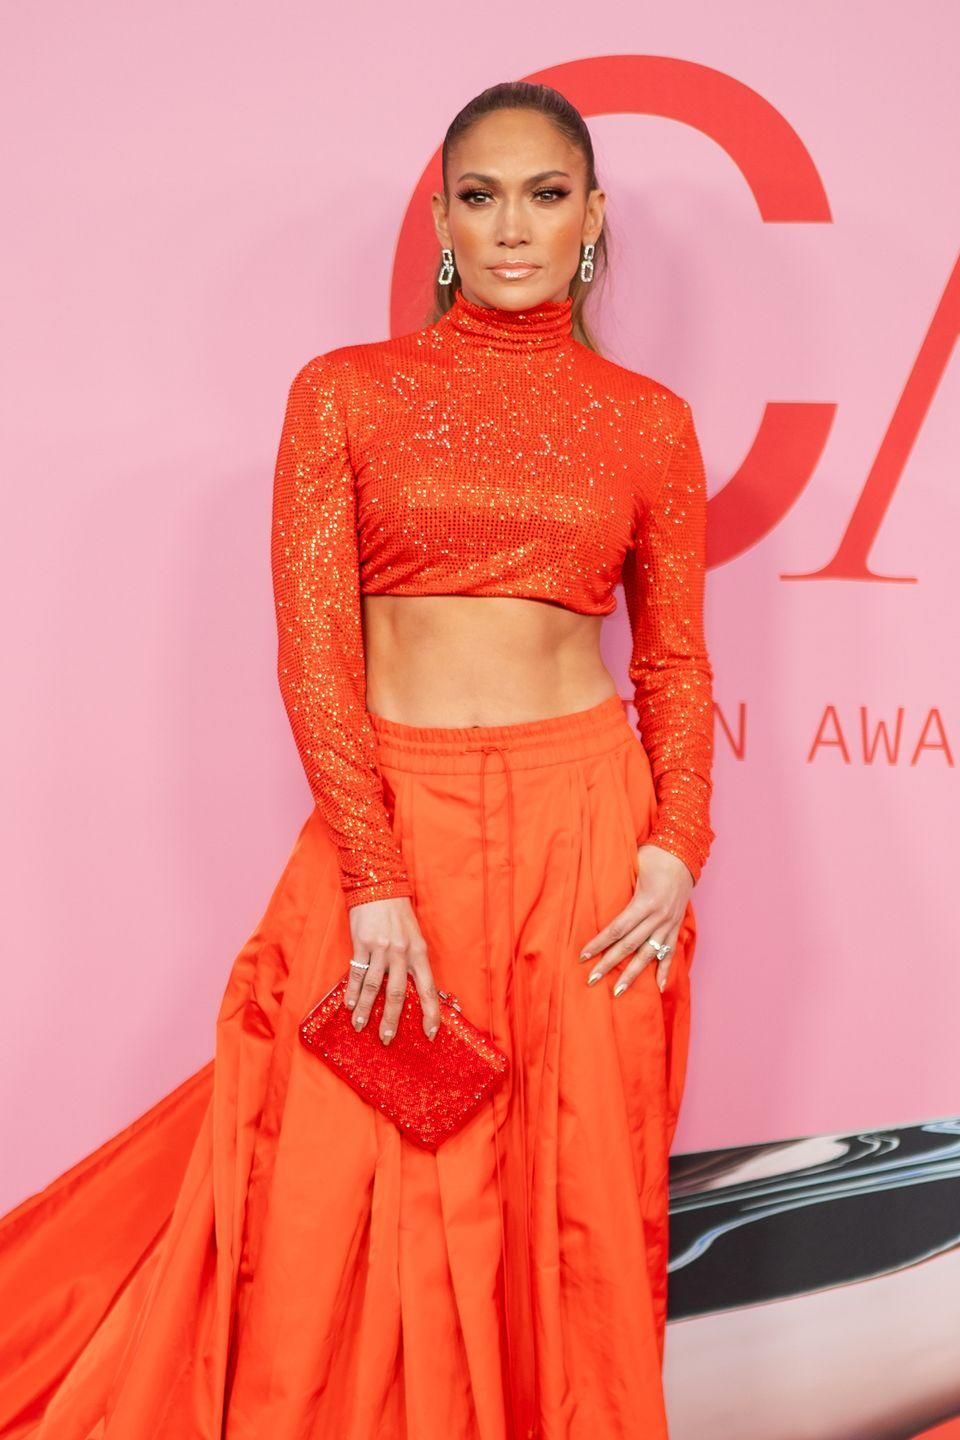 "<p>J.Lo has one of the most recognizable bodies in the industry, but it requires serious upkeep. The singer/actress doesn't work out alone, though—her fiancé Alex Rodriguez joins and they use <a href=""https://www.womenshealthmag.com/fitness/a28208273/jennifer-lopez-butt-alex-rodriguez-dallas-cowboys-workout/"" rel=""nofollow noopener"" target=""_blank"" data-ylk=""slk:FitPlan app"" class=""link rapid-noclick-resp"">FitPlan app</a> to stay toned. Lemme say: It. Is. Working.</p>"